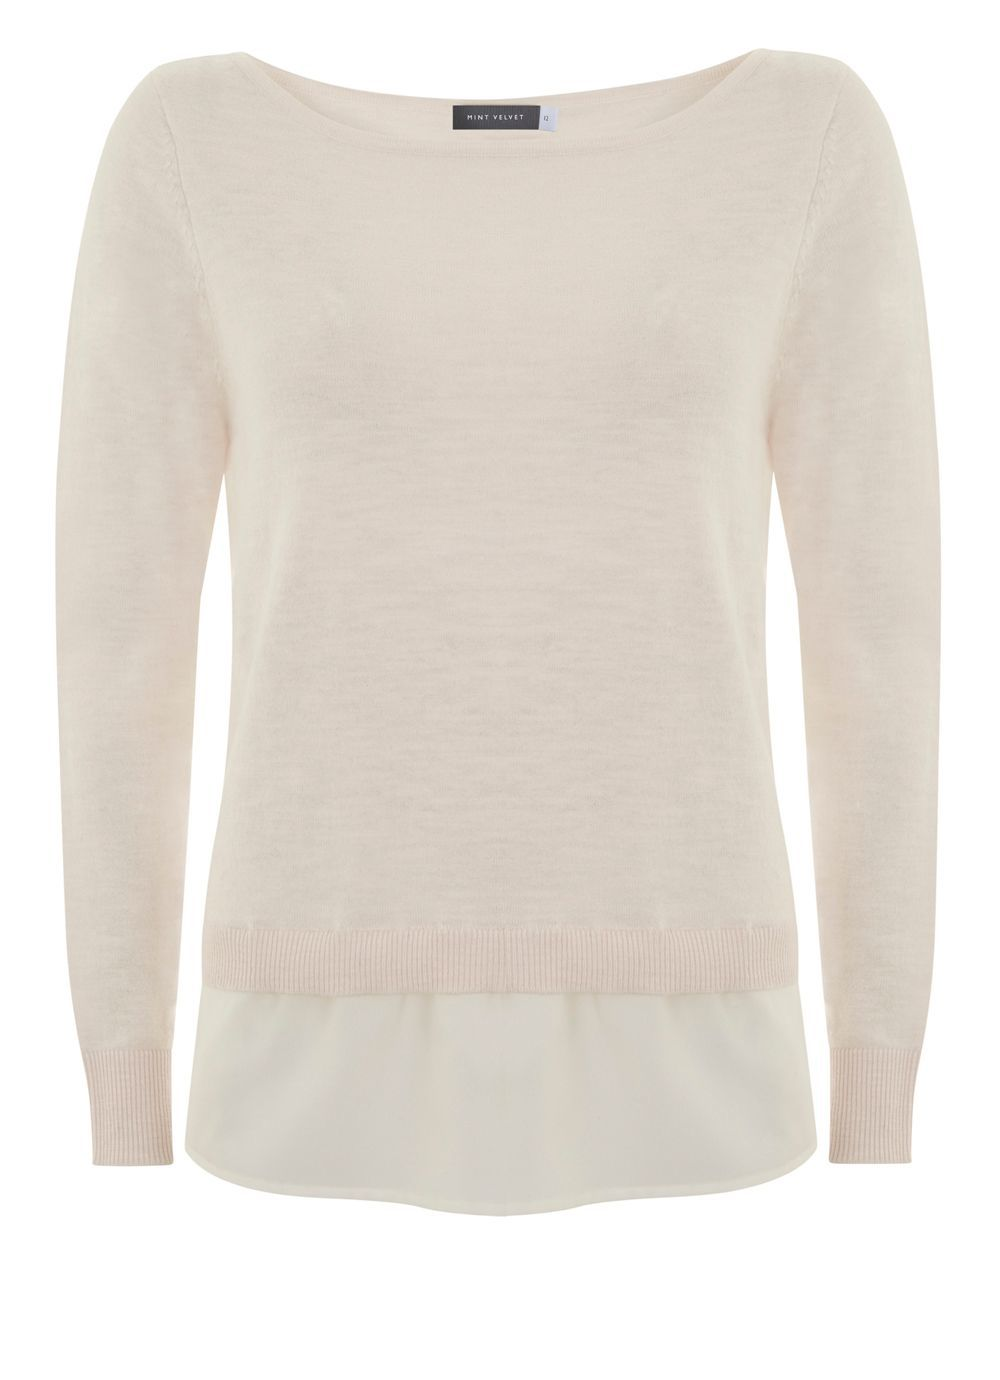 Powder Woven Twist Back Knit, Multi Coloured - neckline: slash/boat neckline; pattern: plain; length: below the bottom; style: standard; predominant colour: ivory/cream; occasions: casual, creative work; fibres: polyester/polyamide - 100%; fit: standard fit; sleeve length: long sleeve; sleeve style: standard; texture group: knits/crochet; pattern type: knitted - fine stitch; season: s/s 2016; wardrobe: basic